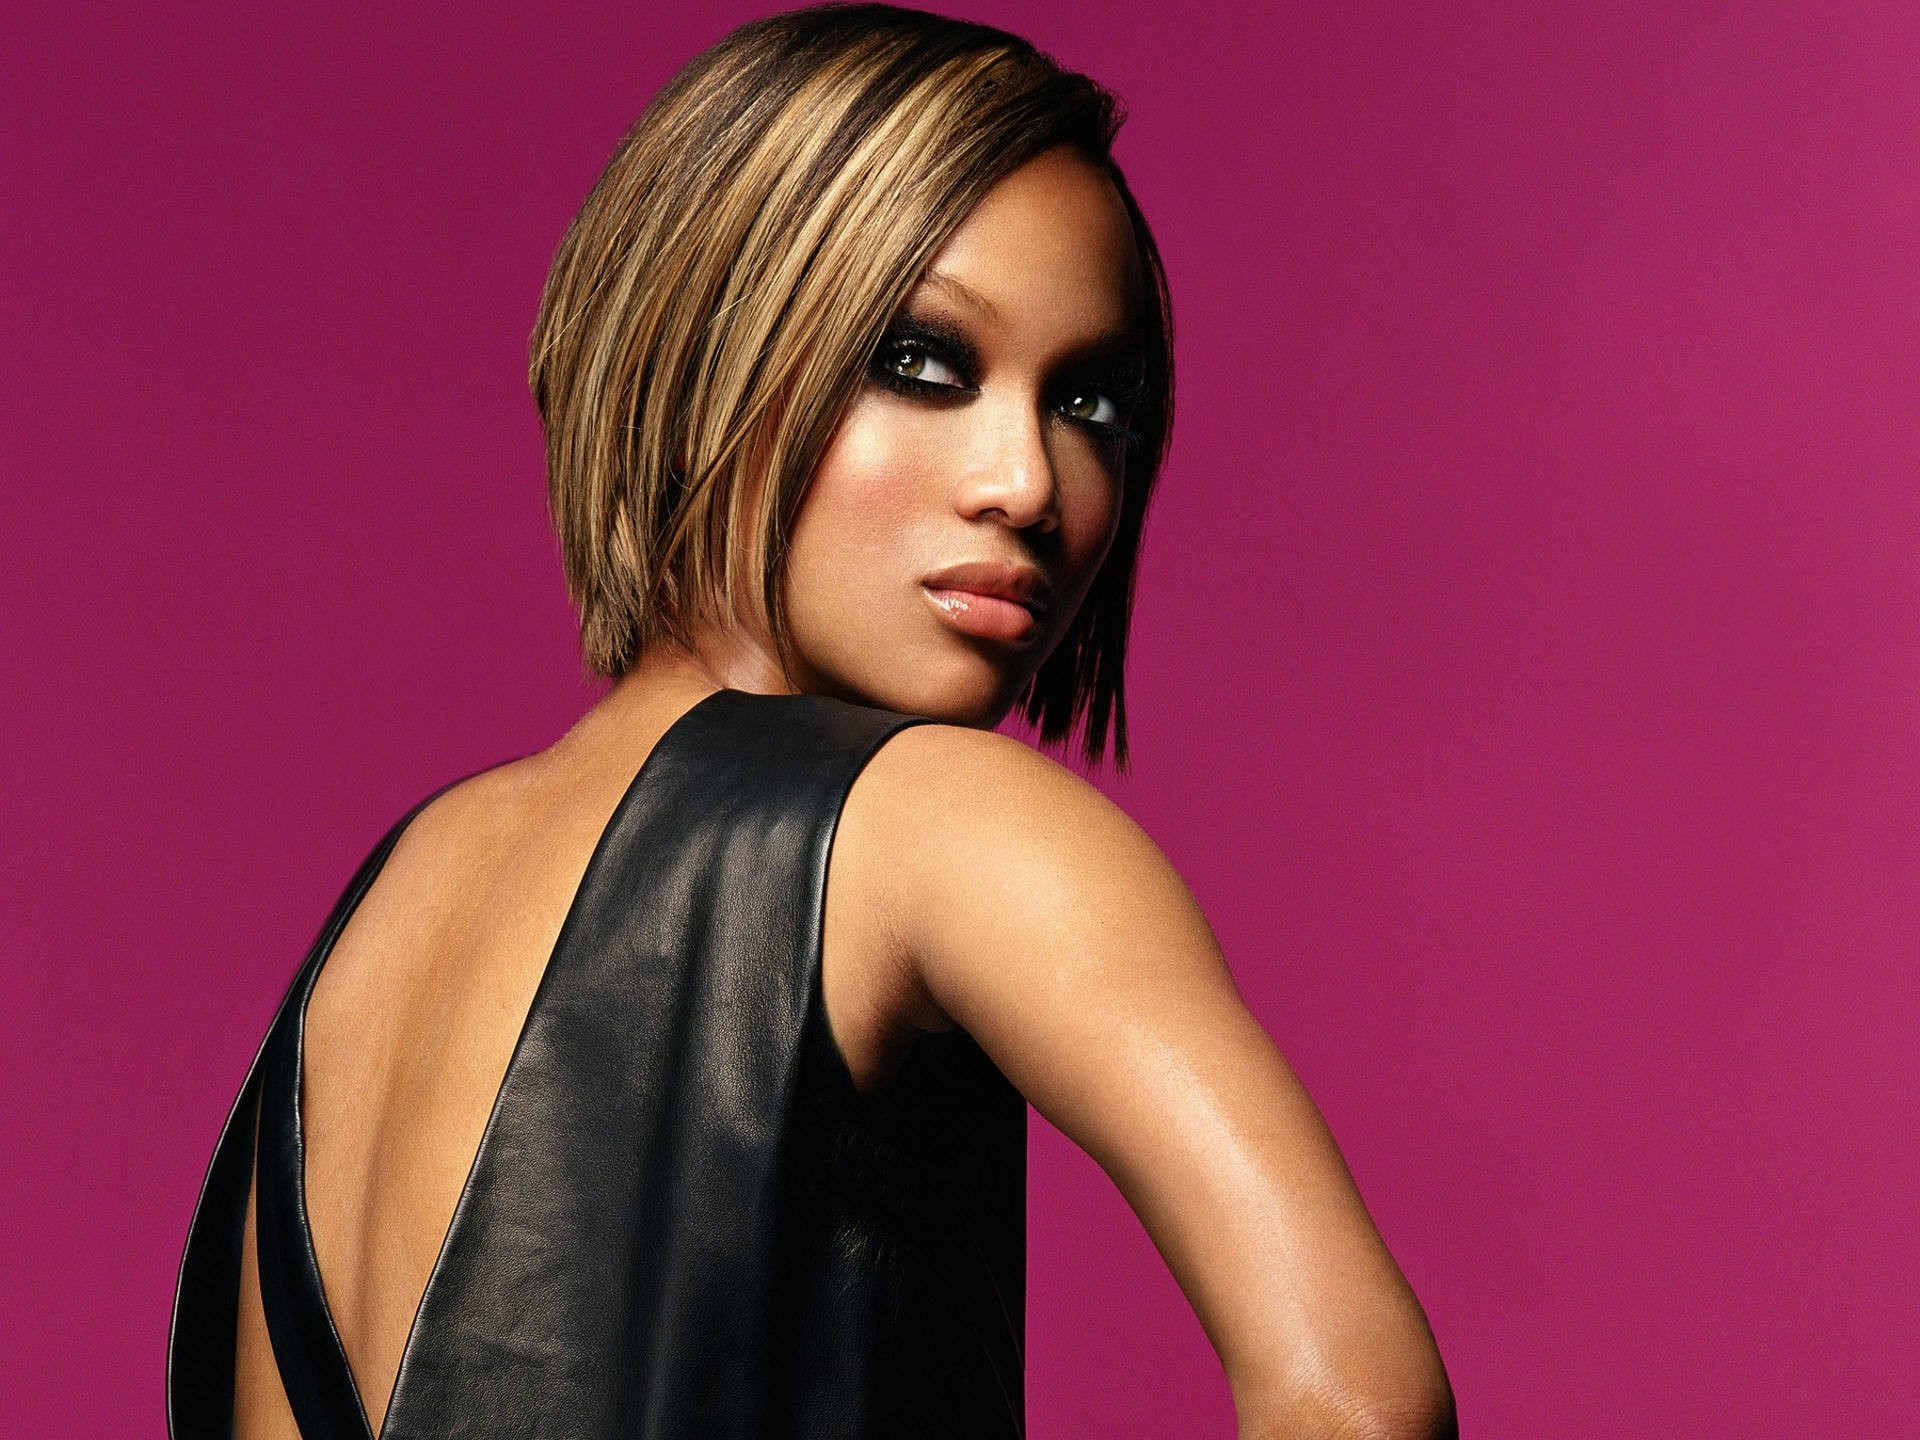 models short hair tyra HD Wallpaper